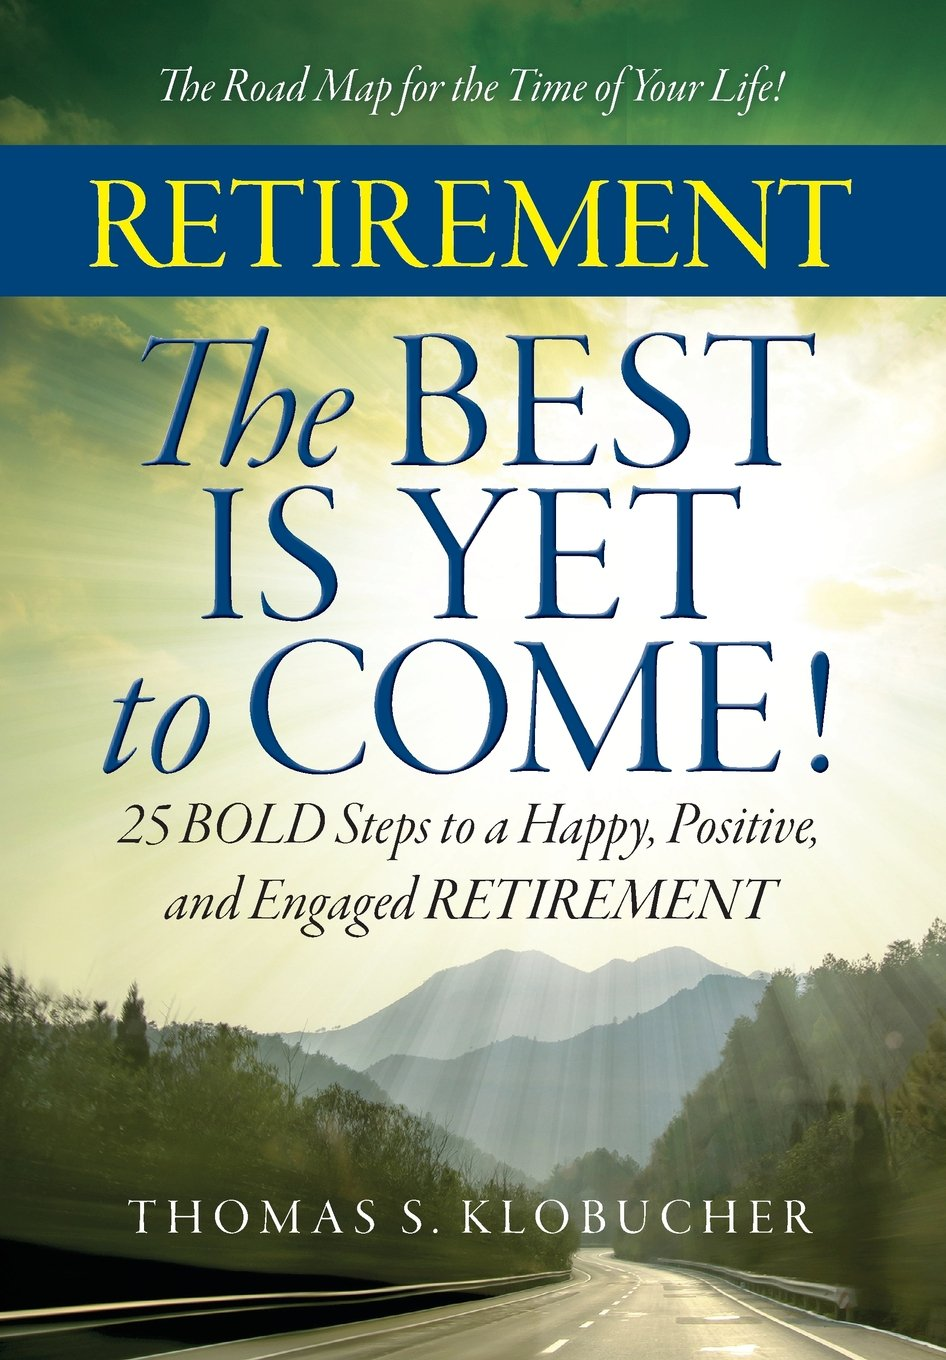 Copy of Retirement, The Best Is Yet to Come!